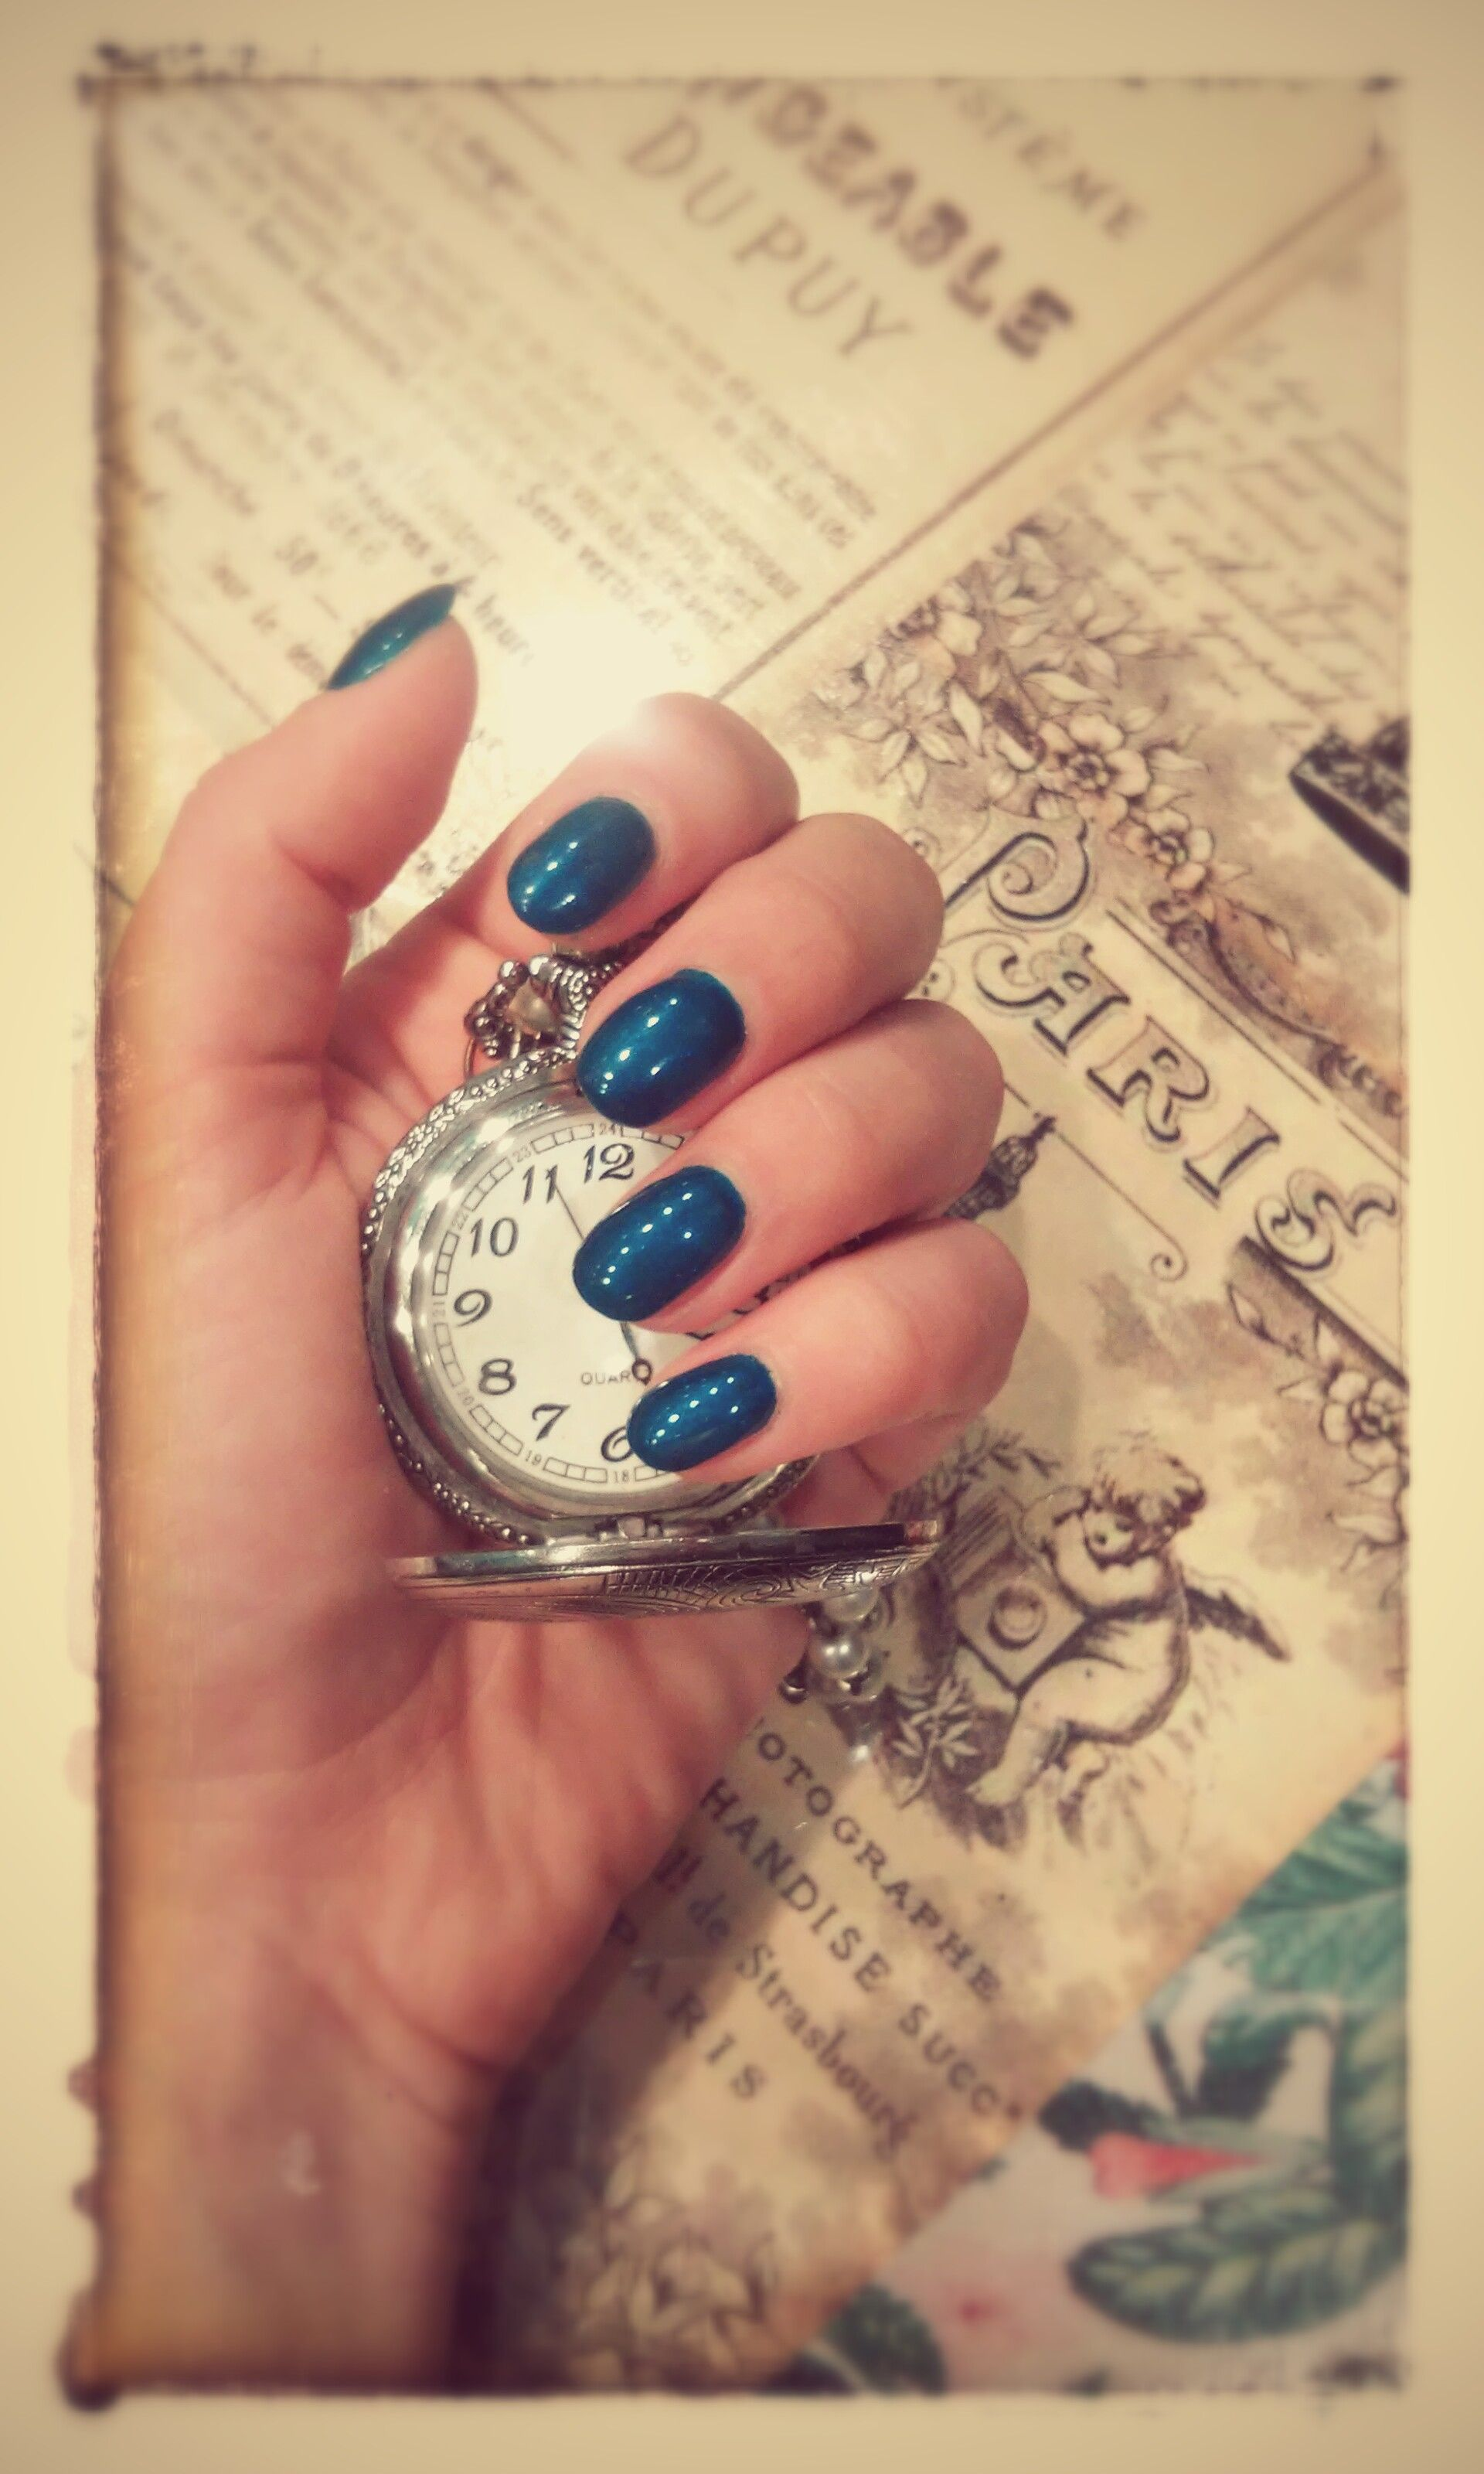 nail art montre vintage affiche r tro paris journal wonderland ongles lyon bleu canard. Black Bedroom Furniture Sets. Home Design Ideas